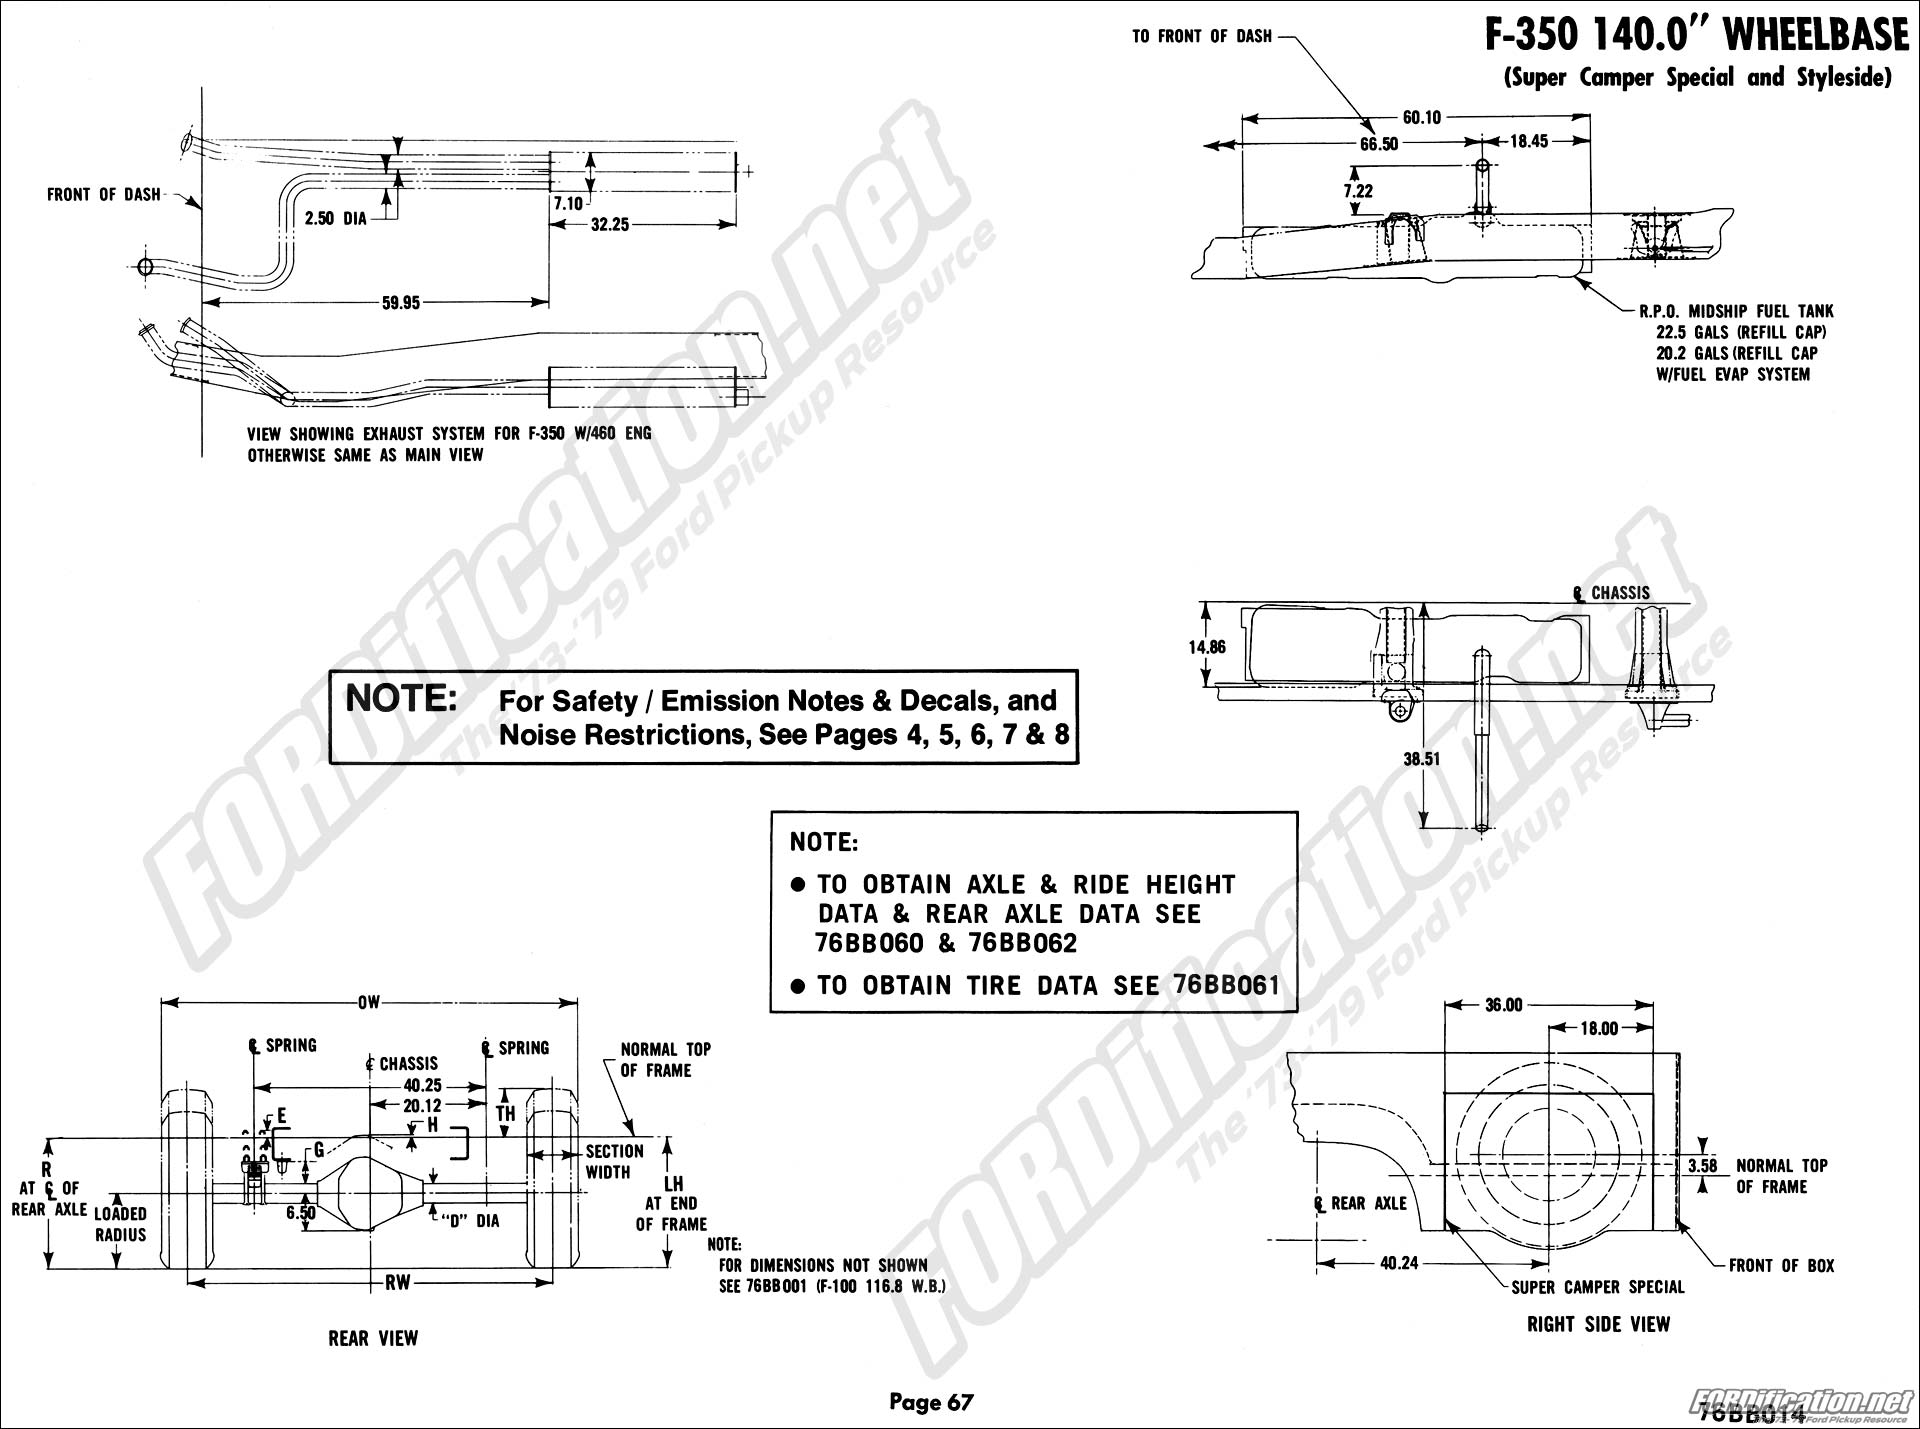 chassis_f350scs_02 1976 ford body builder's layout book fordification net